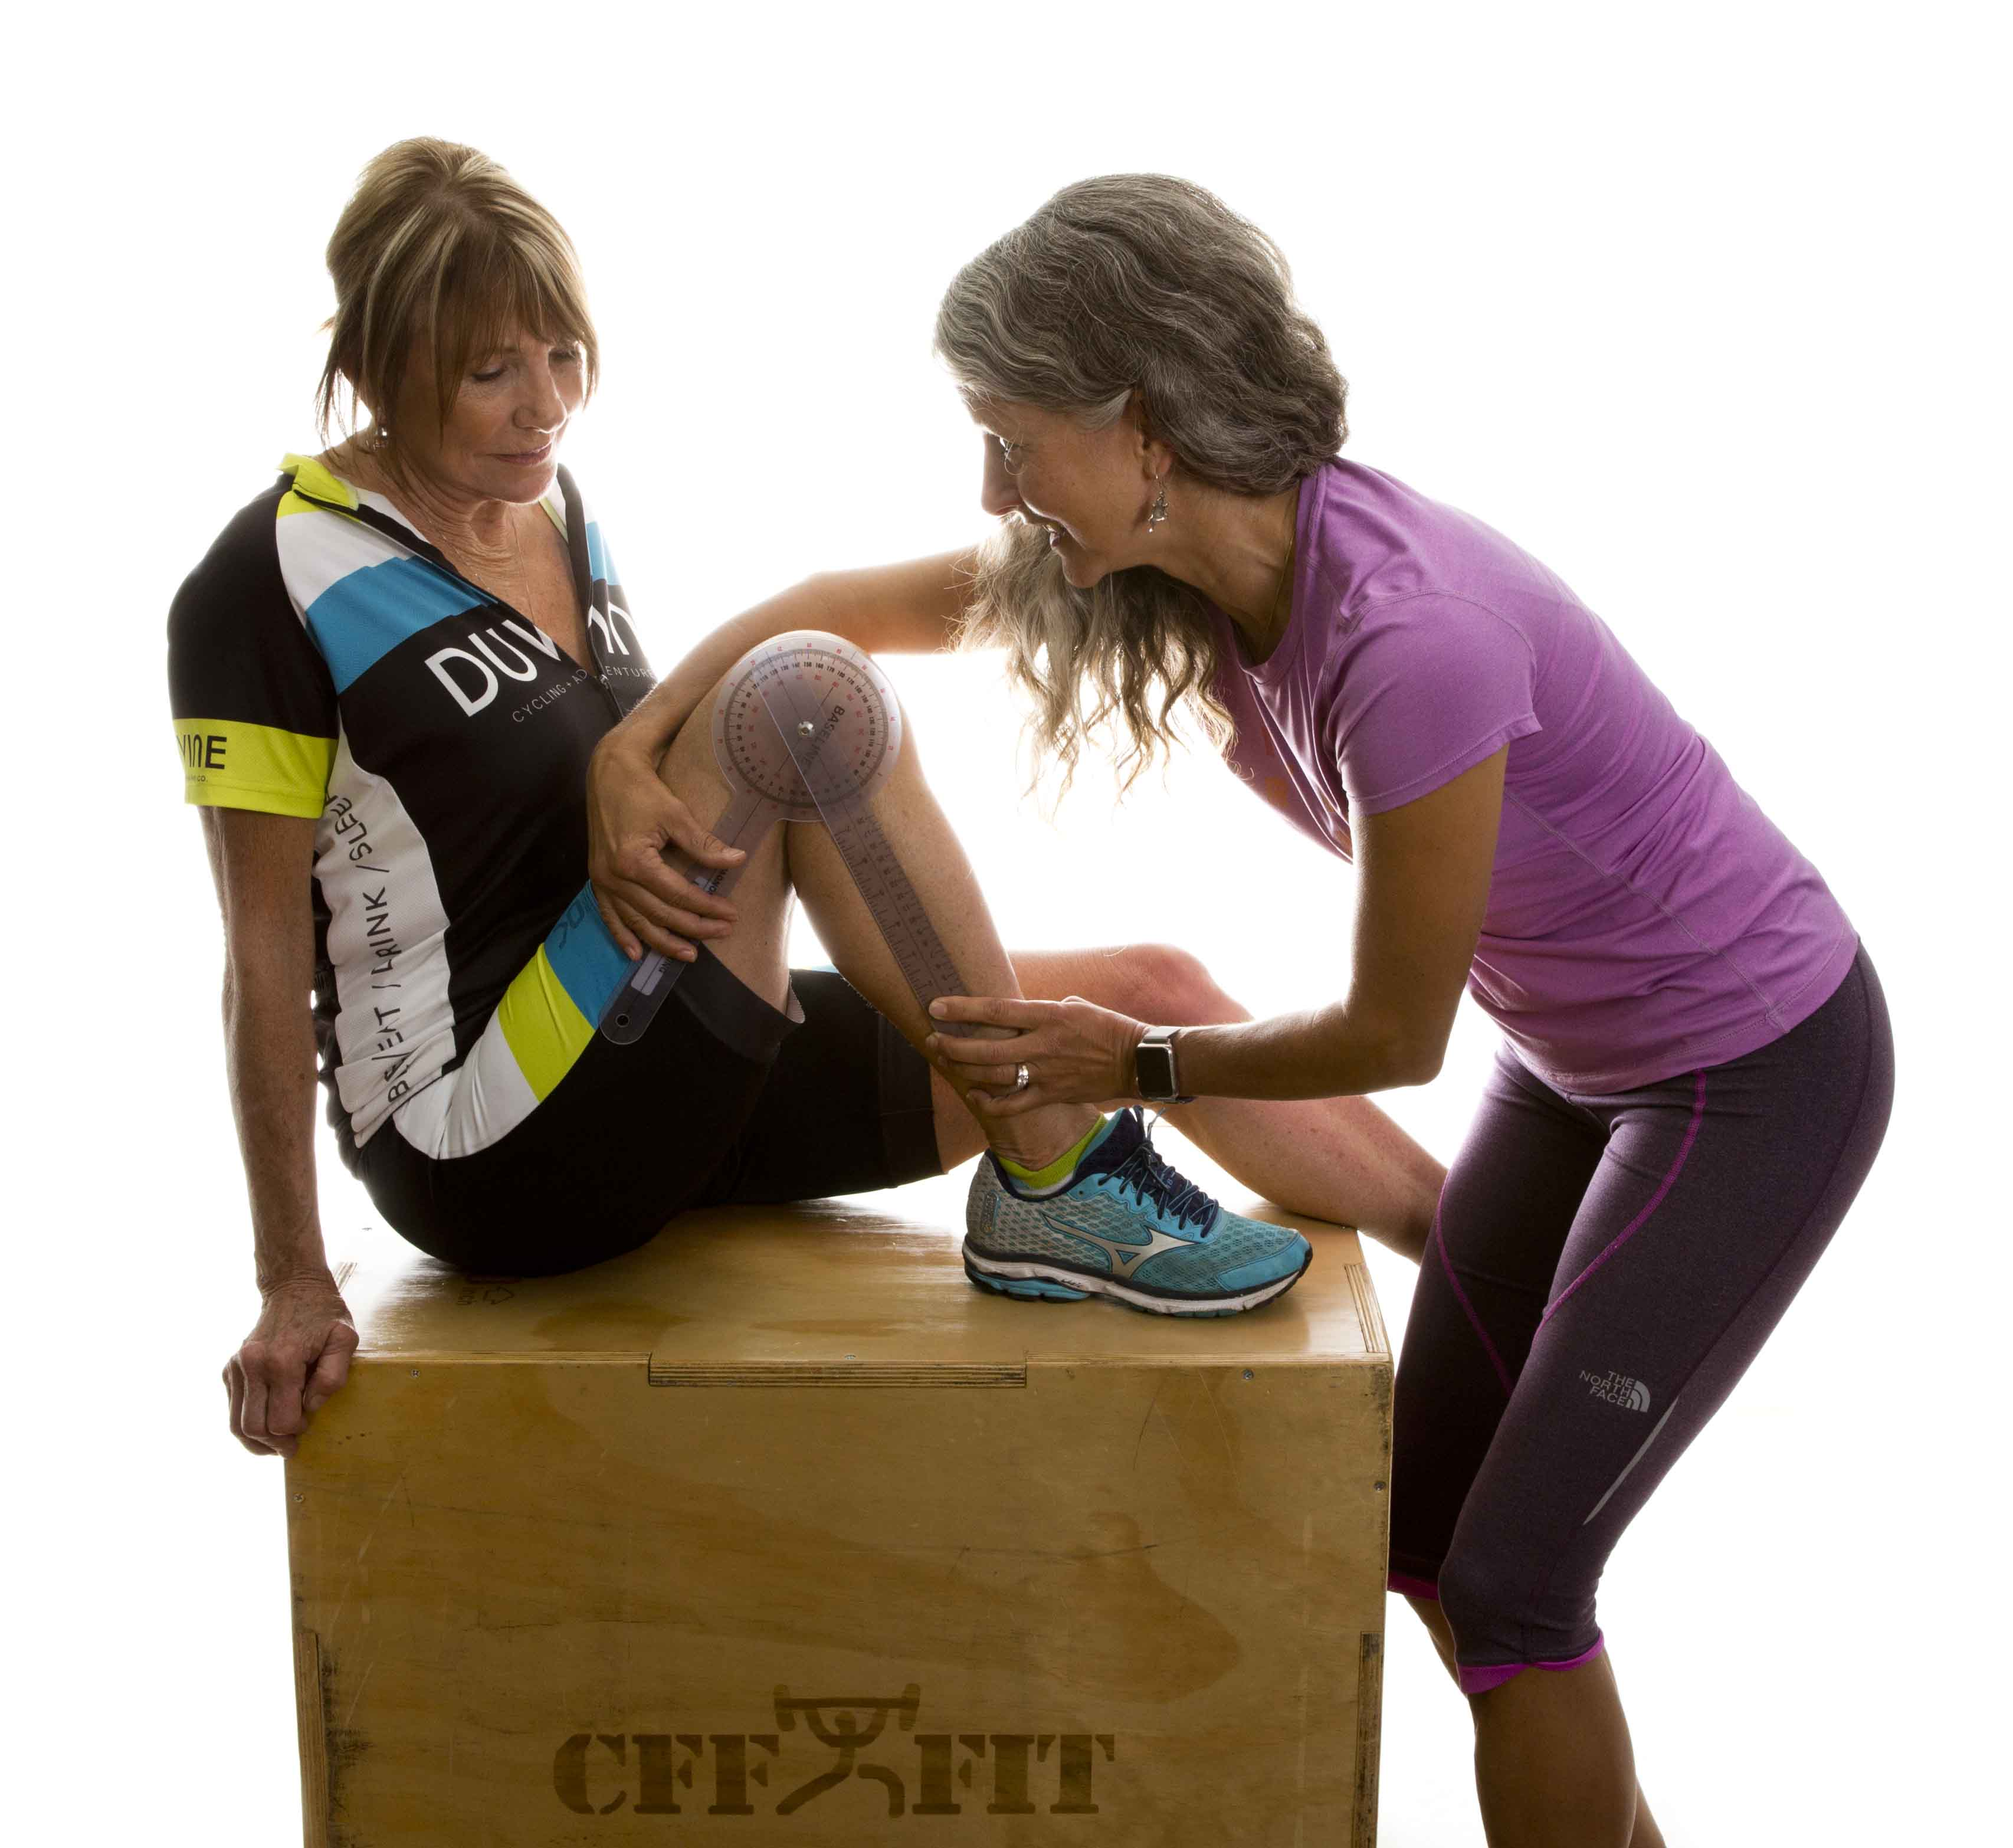 Personal trainer helping a client to create corrective exercises